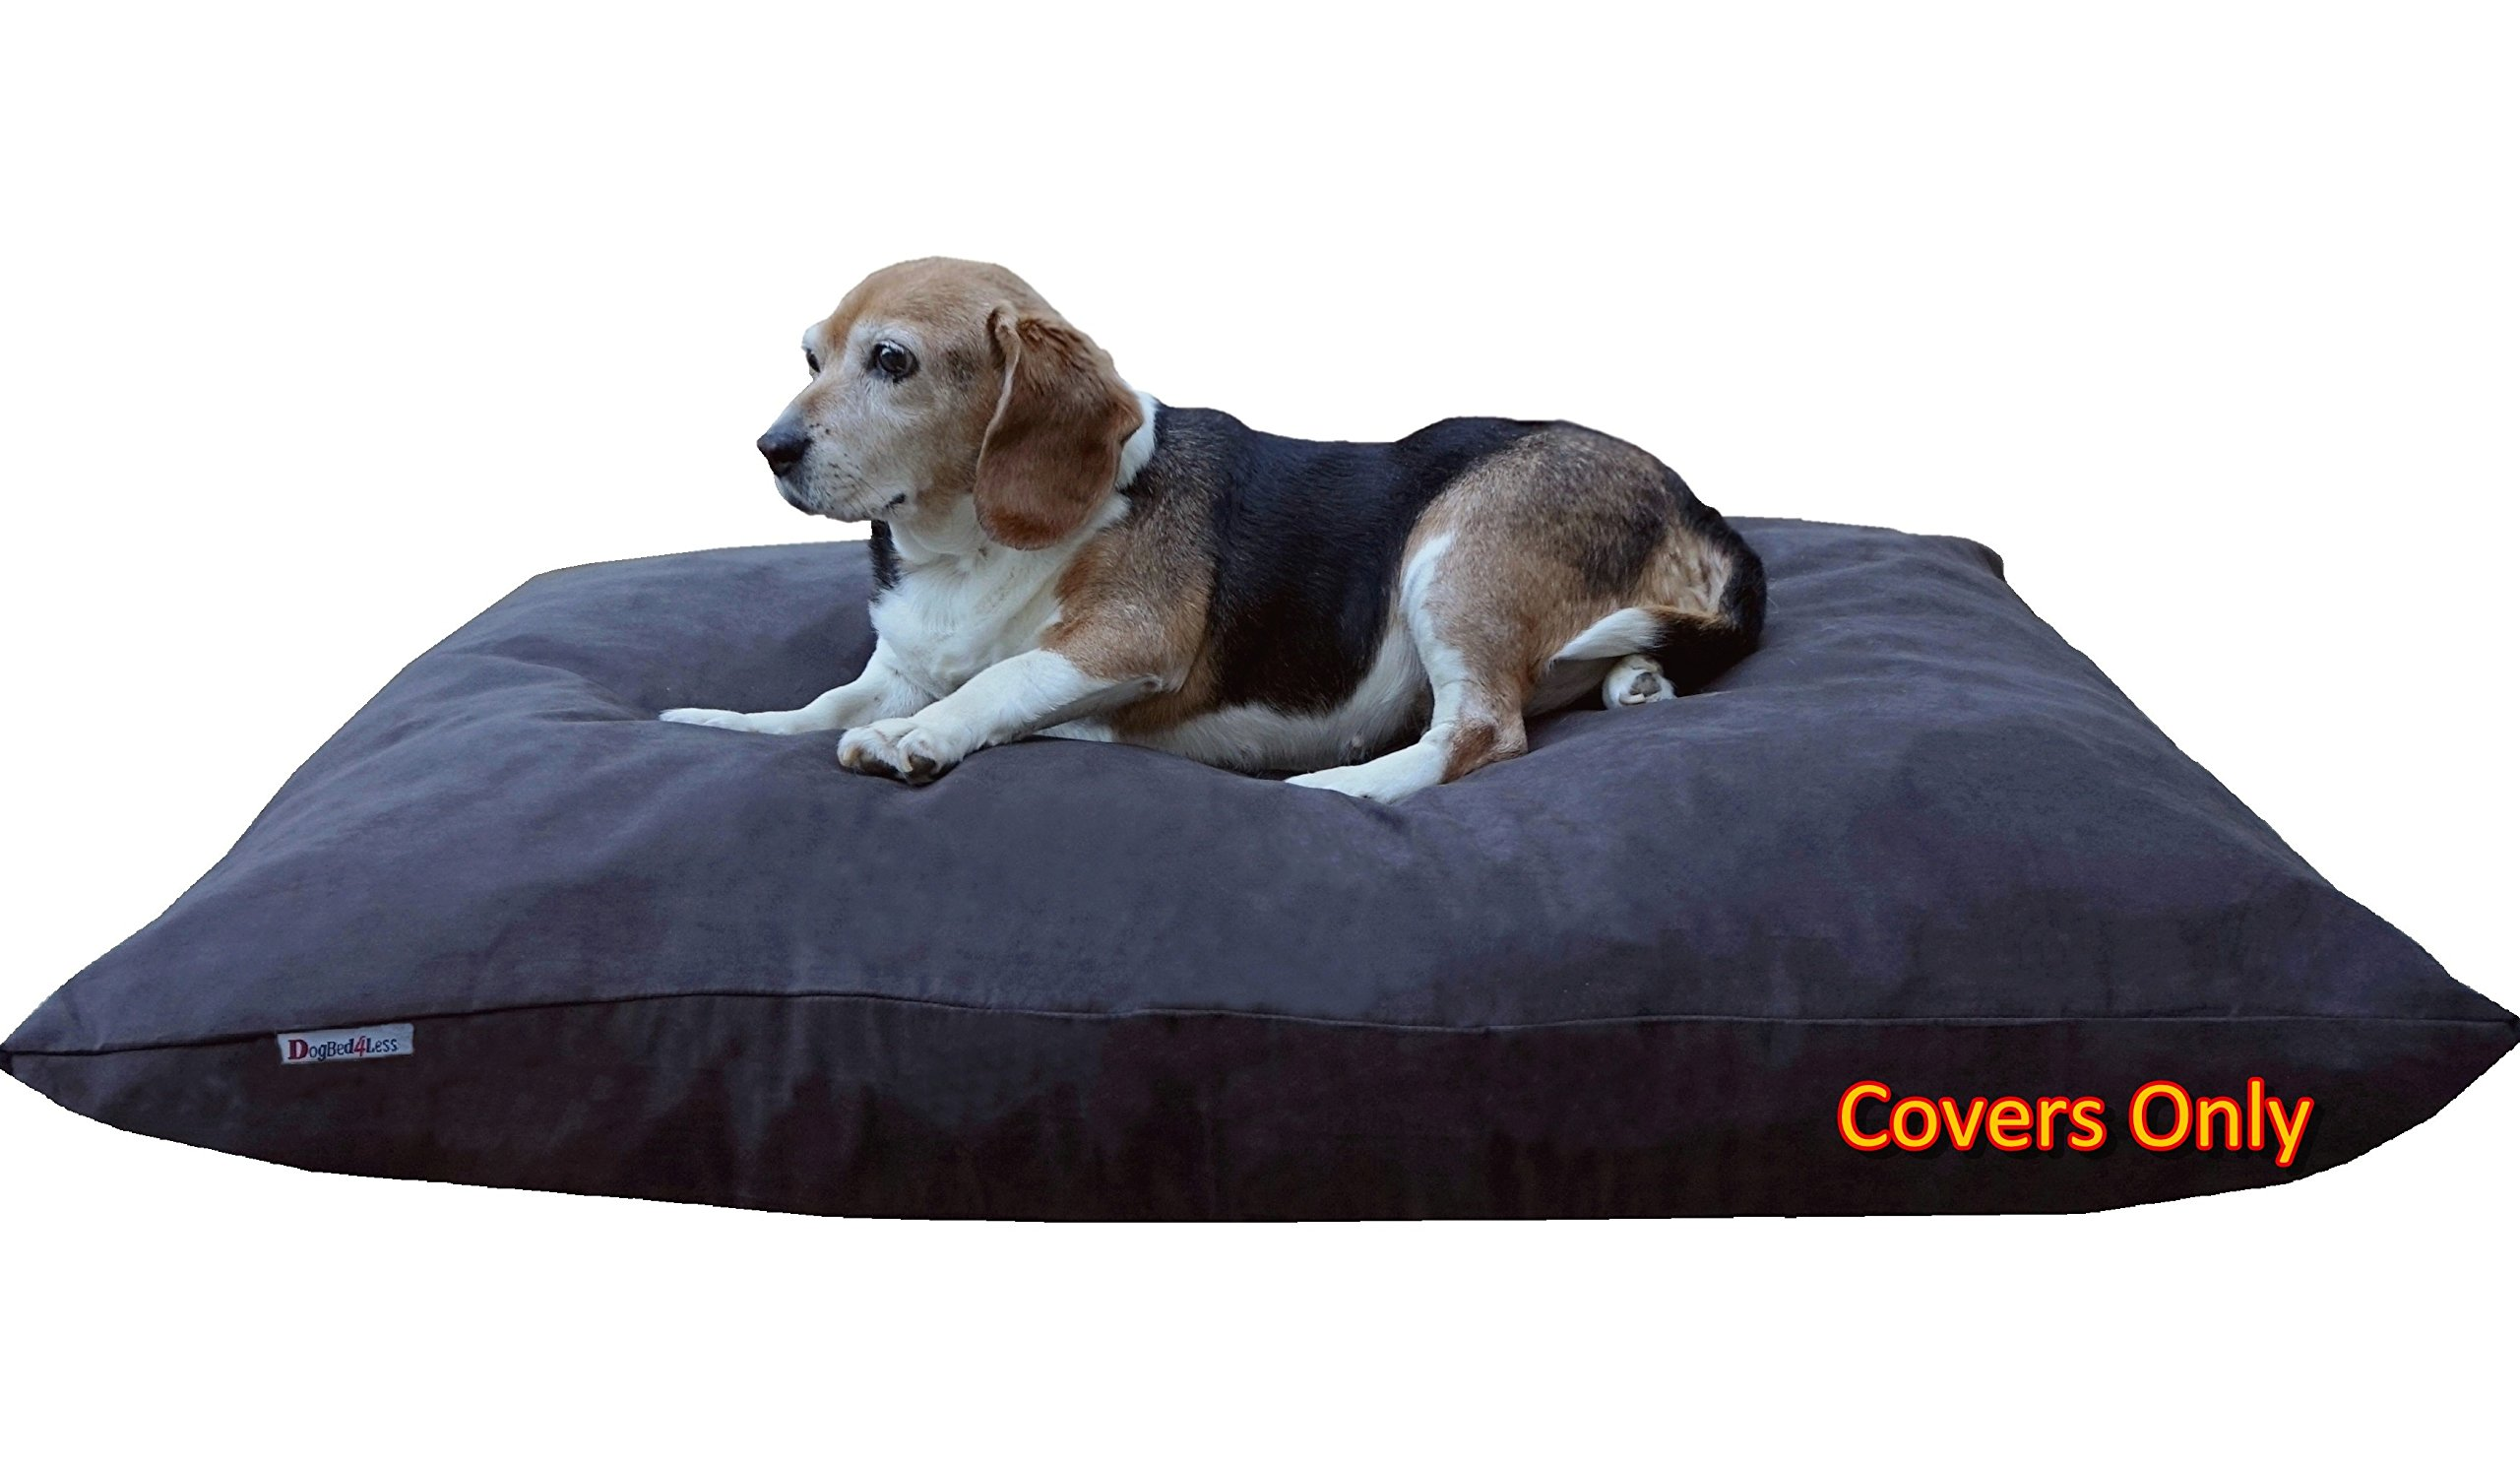 Dogbed4less Do It Yourself DIY Pet Bed Pillow Duvet Suede Cover + Waterproof Internal case for Dog/Cat at Large 48''X29'' Espresso Color - Covers only